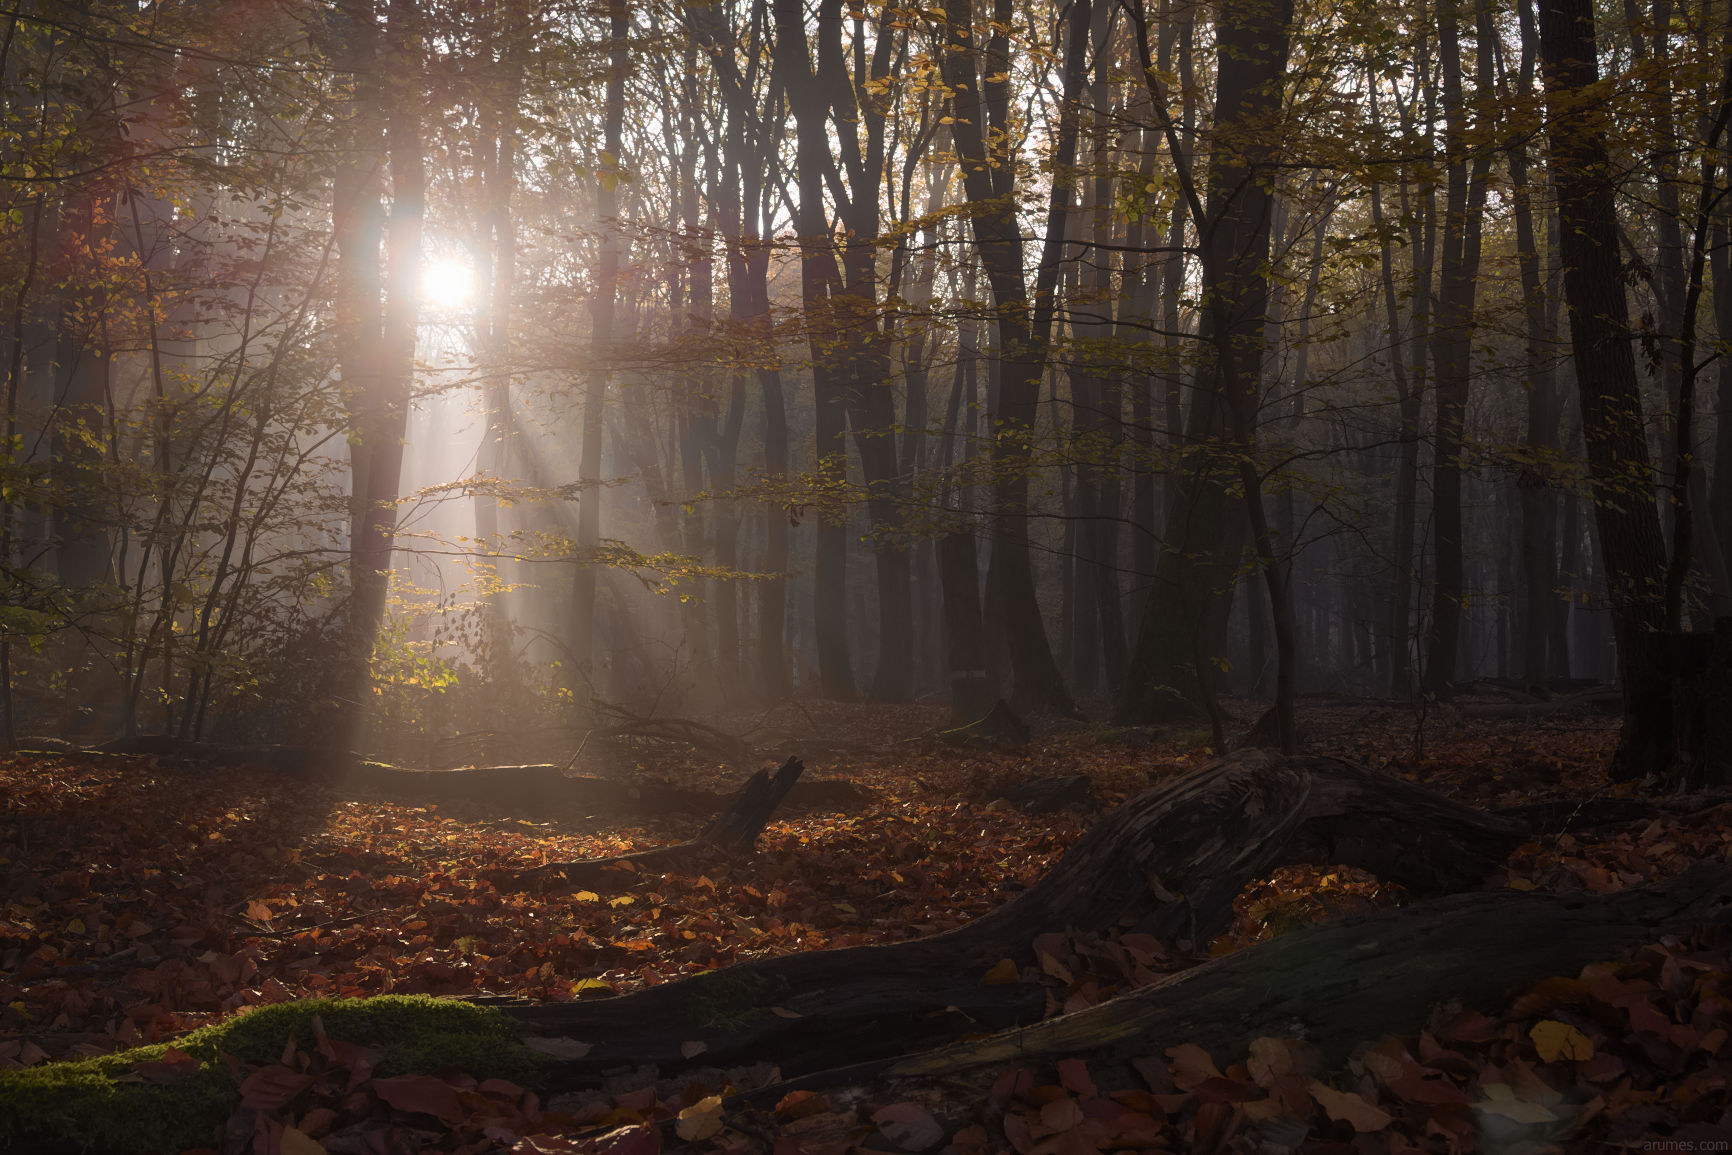 autumn deciduous woods with sunrise rays in haze